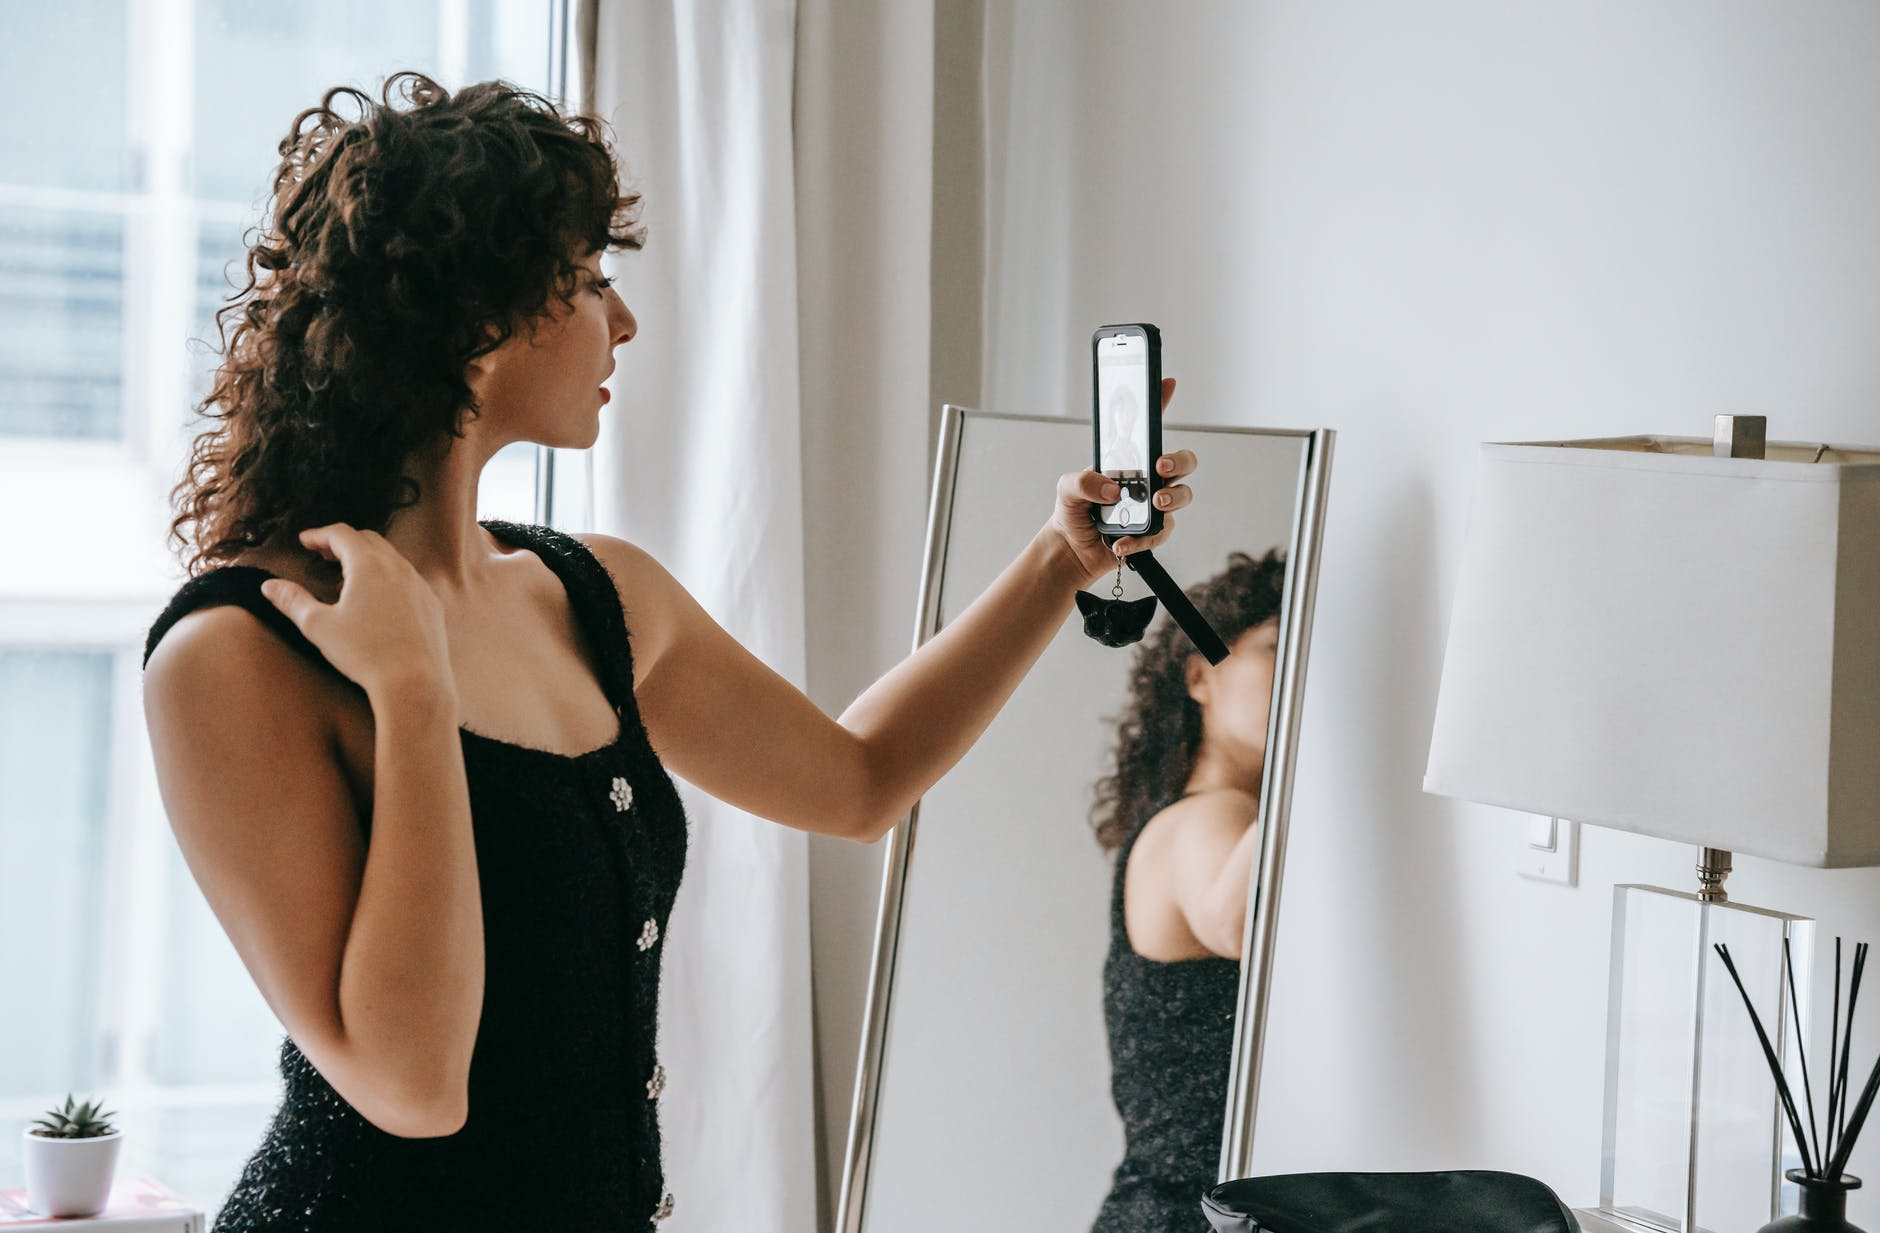 beautiful woman taking selfie against mirror